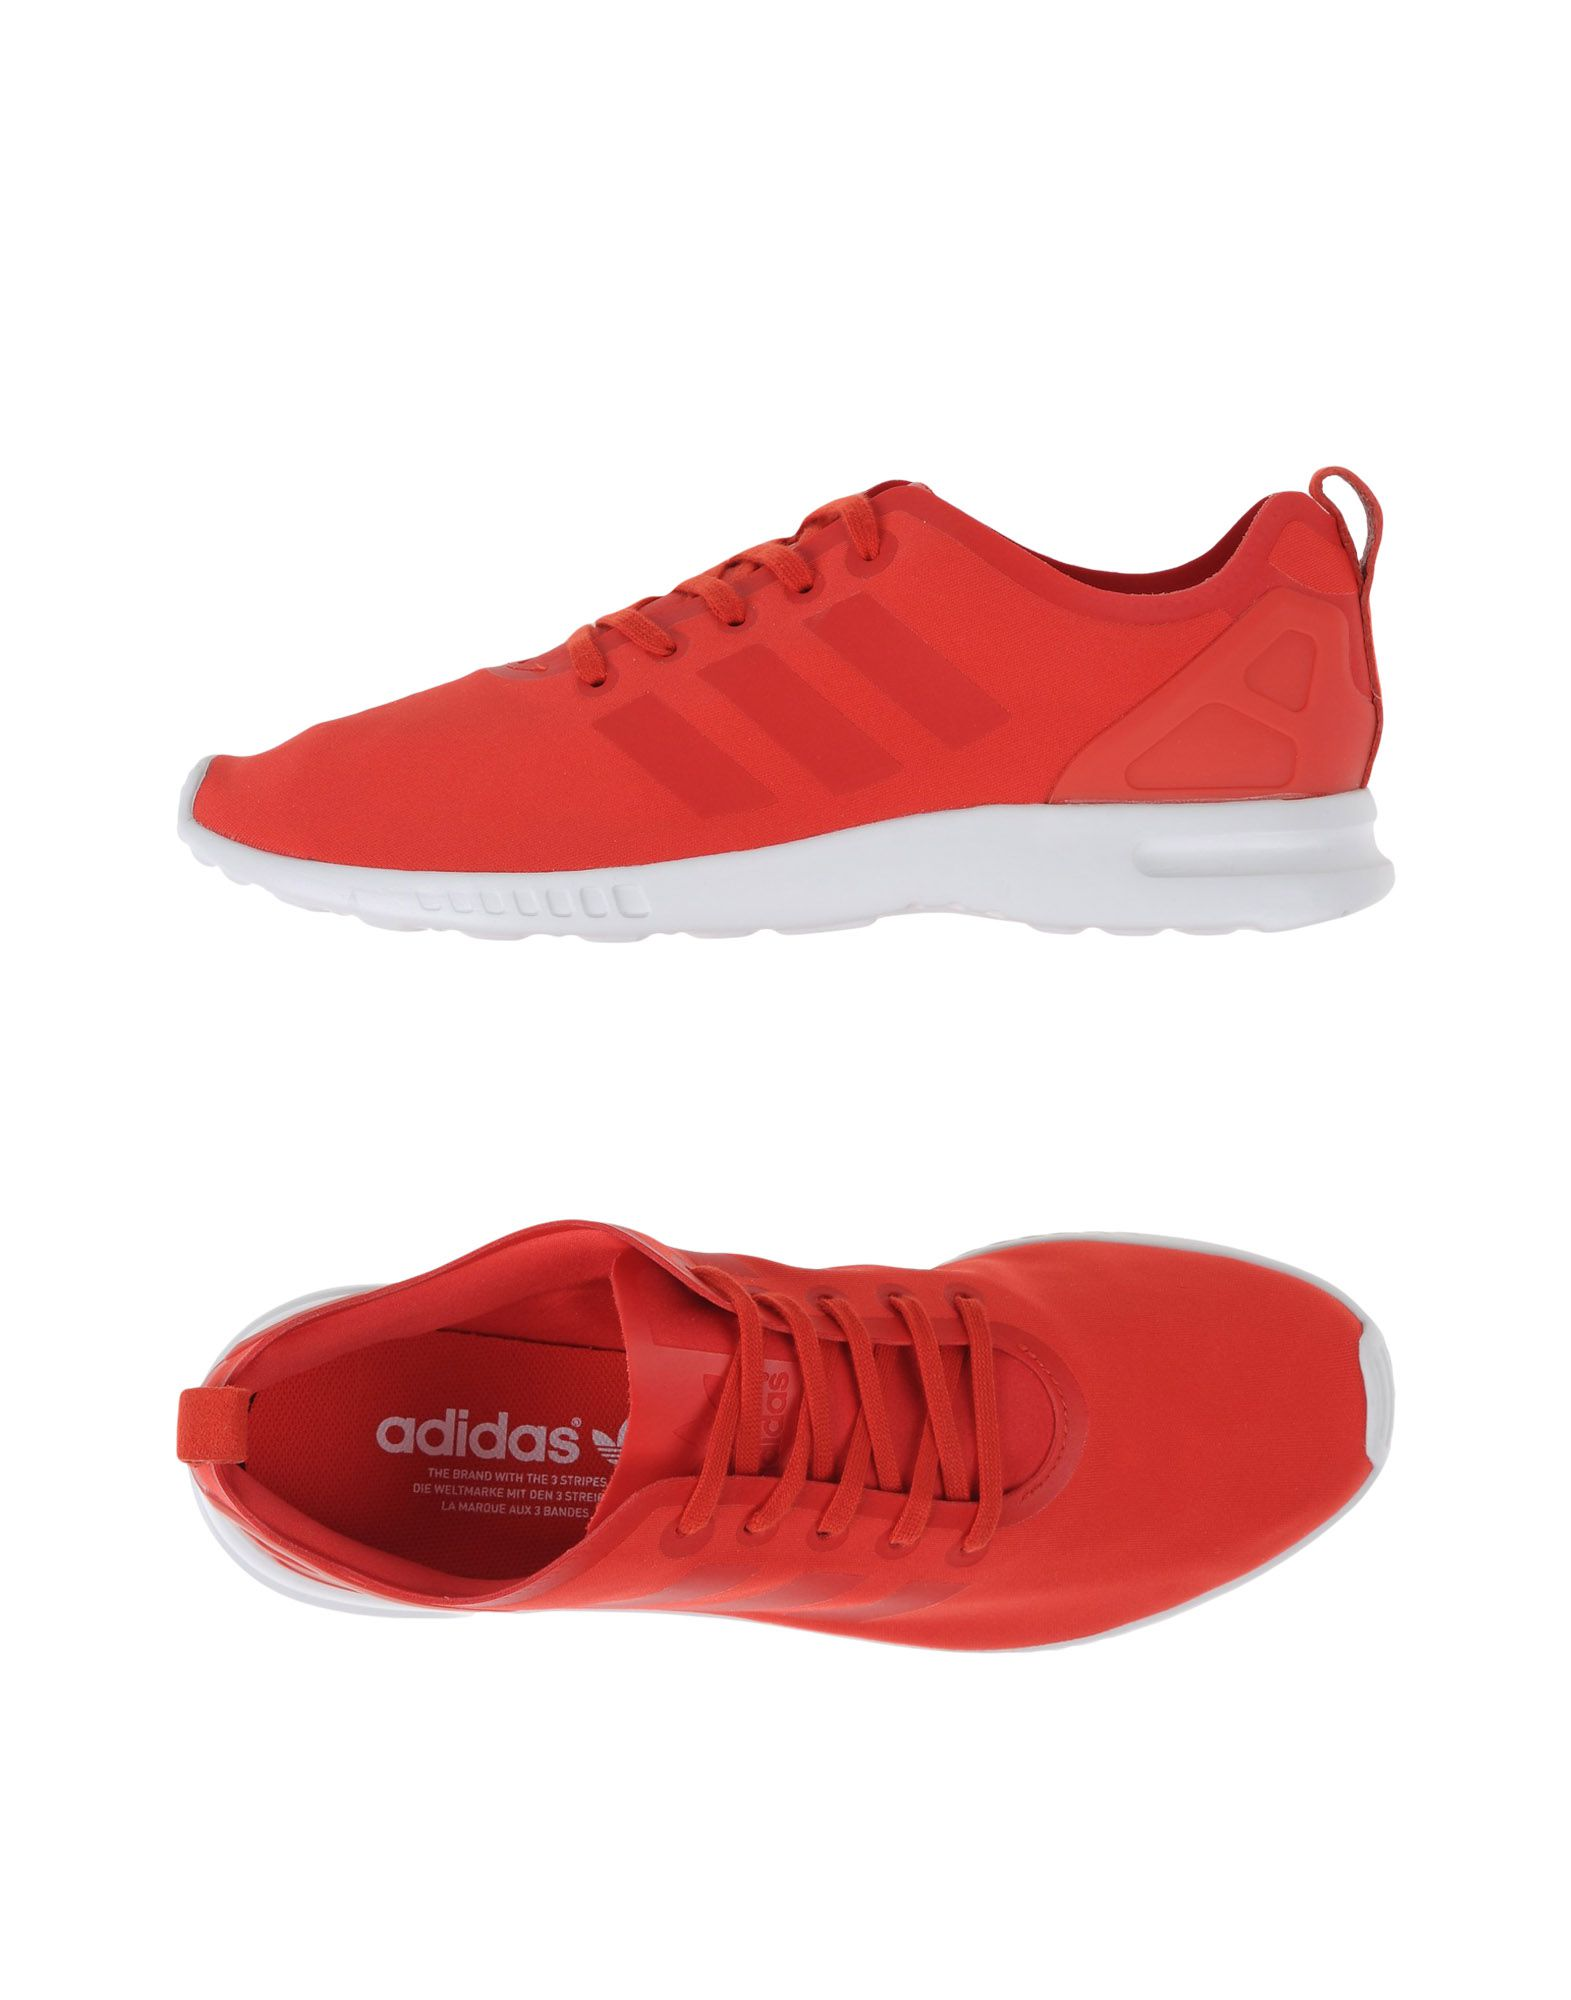 Sneakers Adidas Originals Zx Flux Adv Smooth - Femme - Sneakers Adidas Originals sur